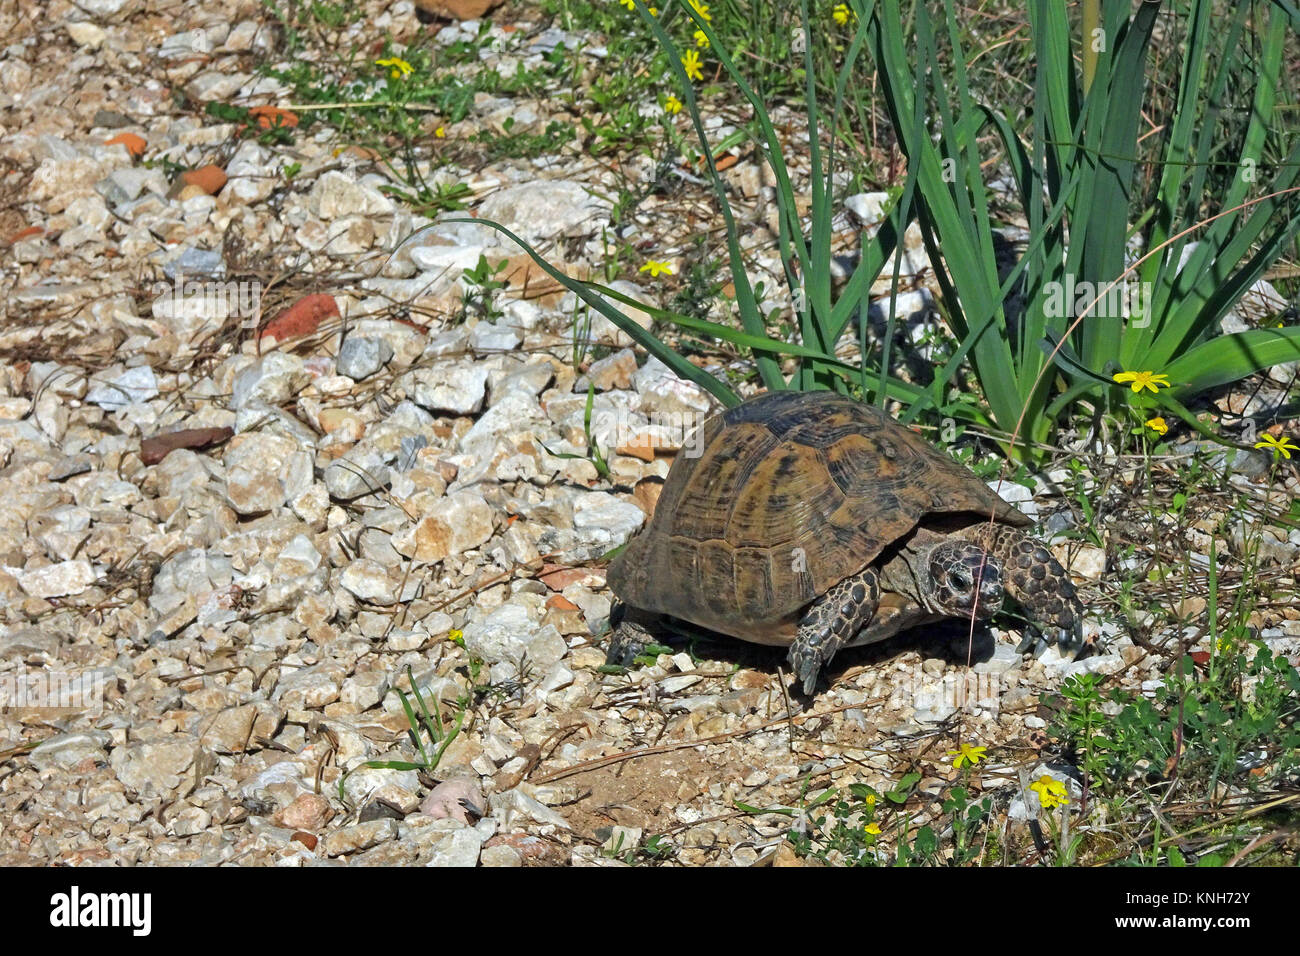 Spur-thighed tortoise or Greek tortoise (Testudo graeca) at the castle hill, IUCN red list, Alanya, turkish riviera, - Stock Image